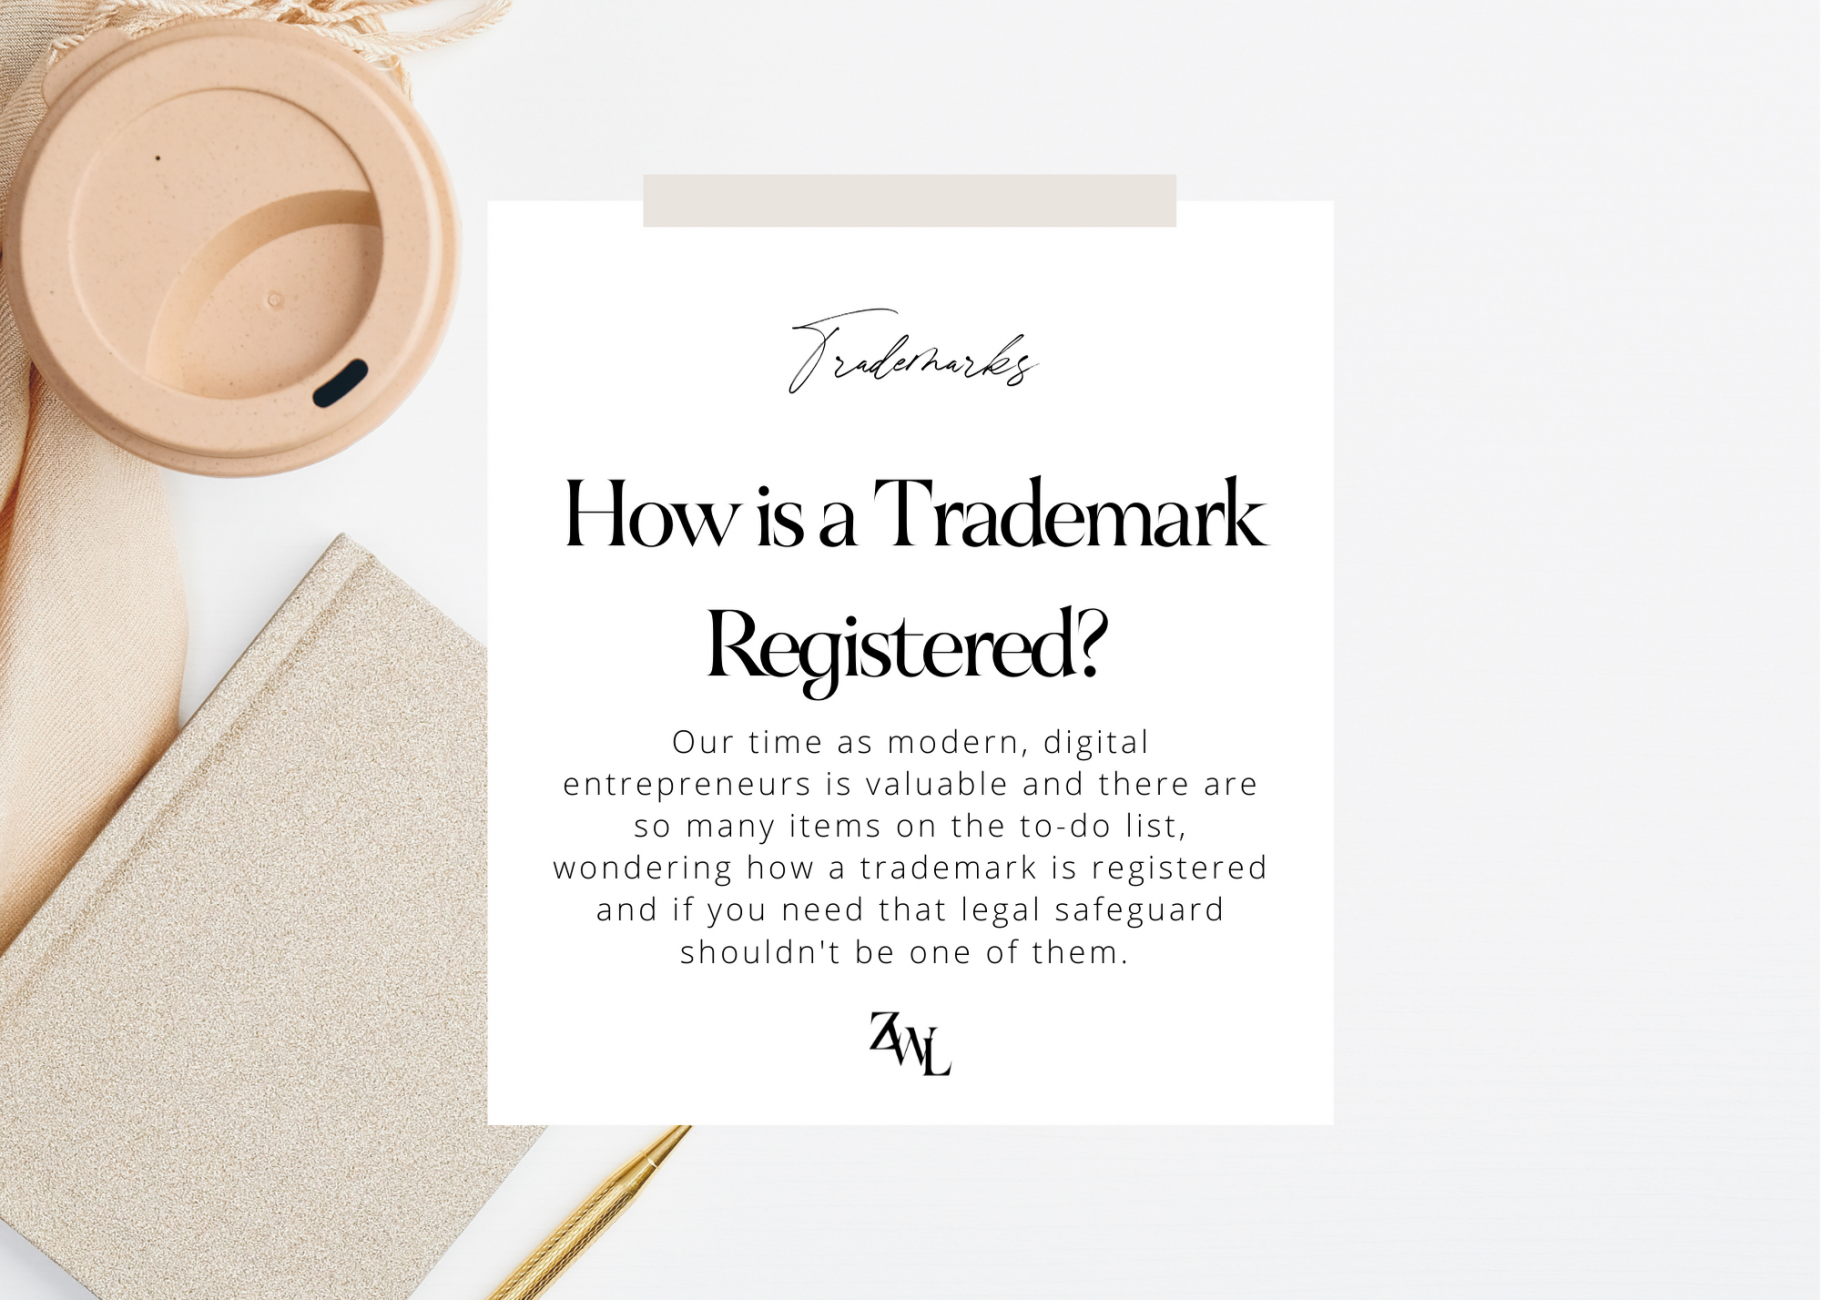 how is a trademark registered?